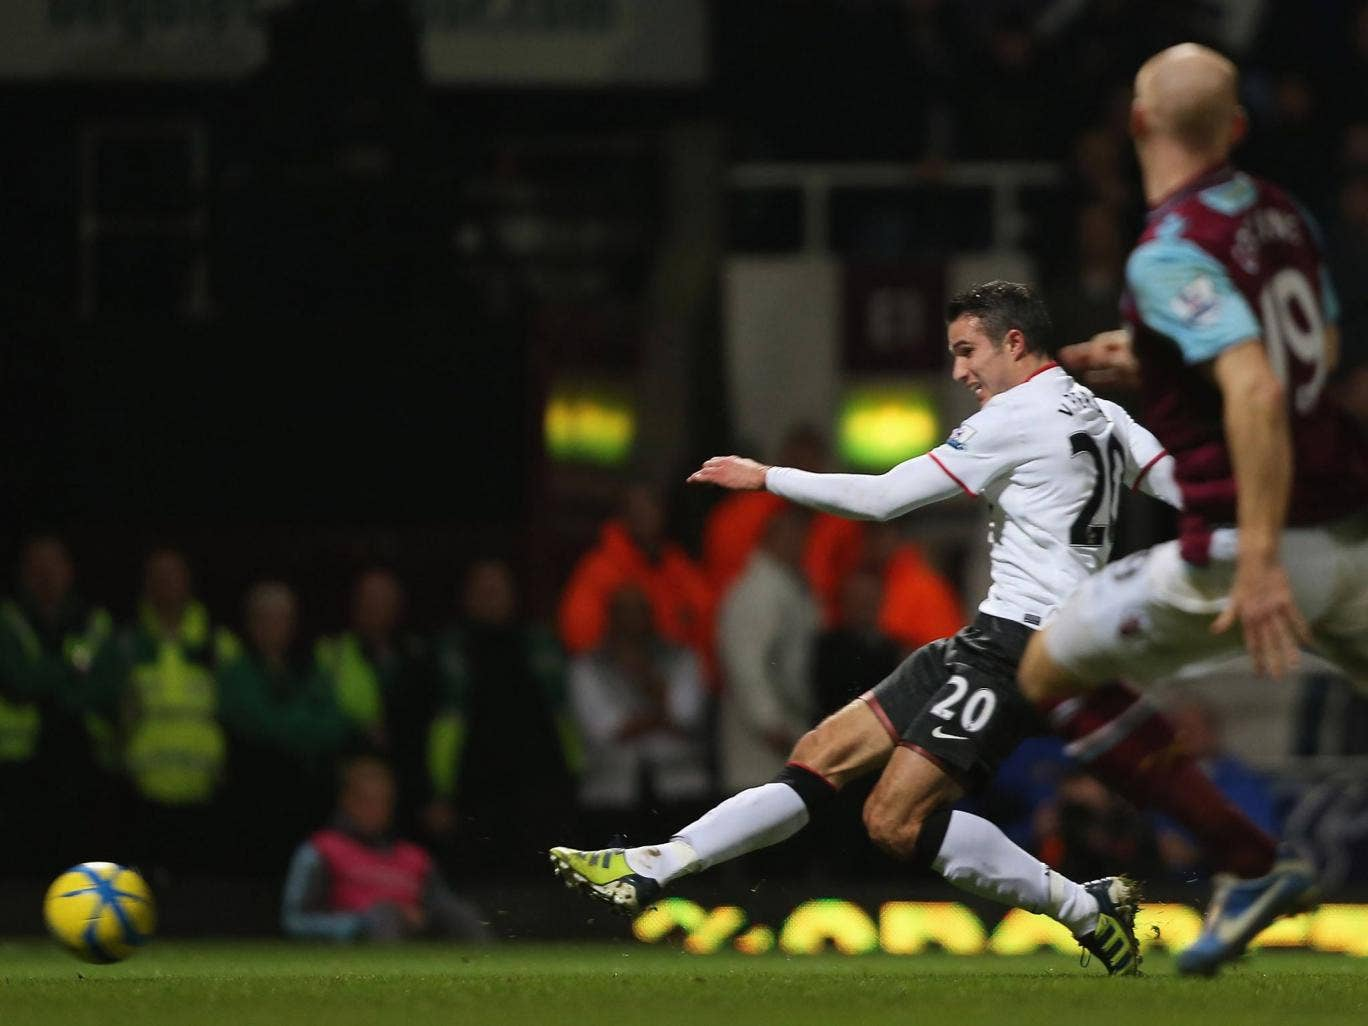 <b>West Ham United 2-2 Manchester United </b><br/> <b>5 January 2013</b><br/> <b>FA Cup </b><br/>  Van Persie came off the bench to score a stoppage time equaliser and keep Manchester United's hopes of winning their first FA Cup since 2004 alive. Ferguson